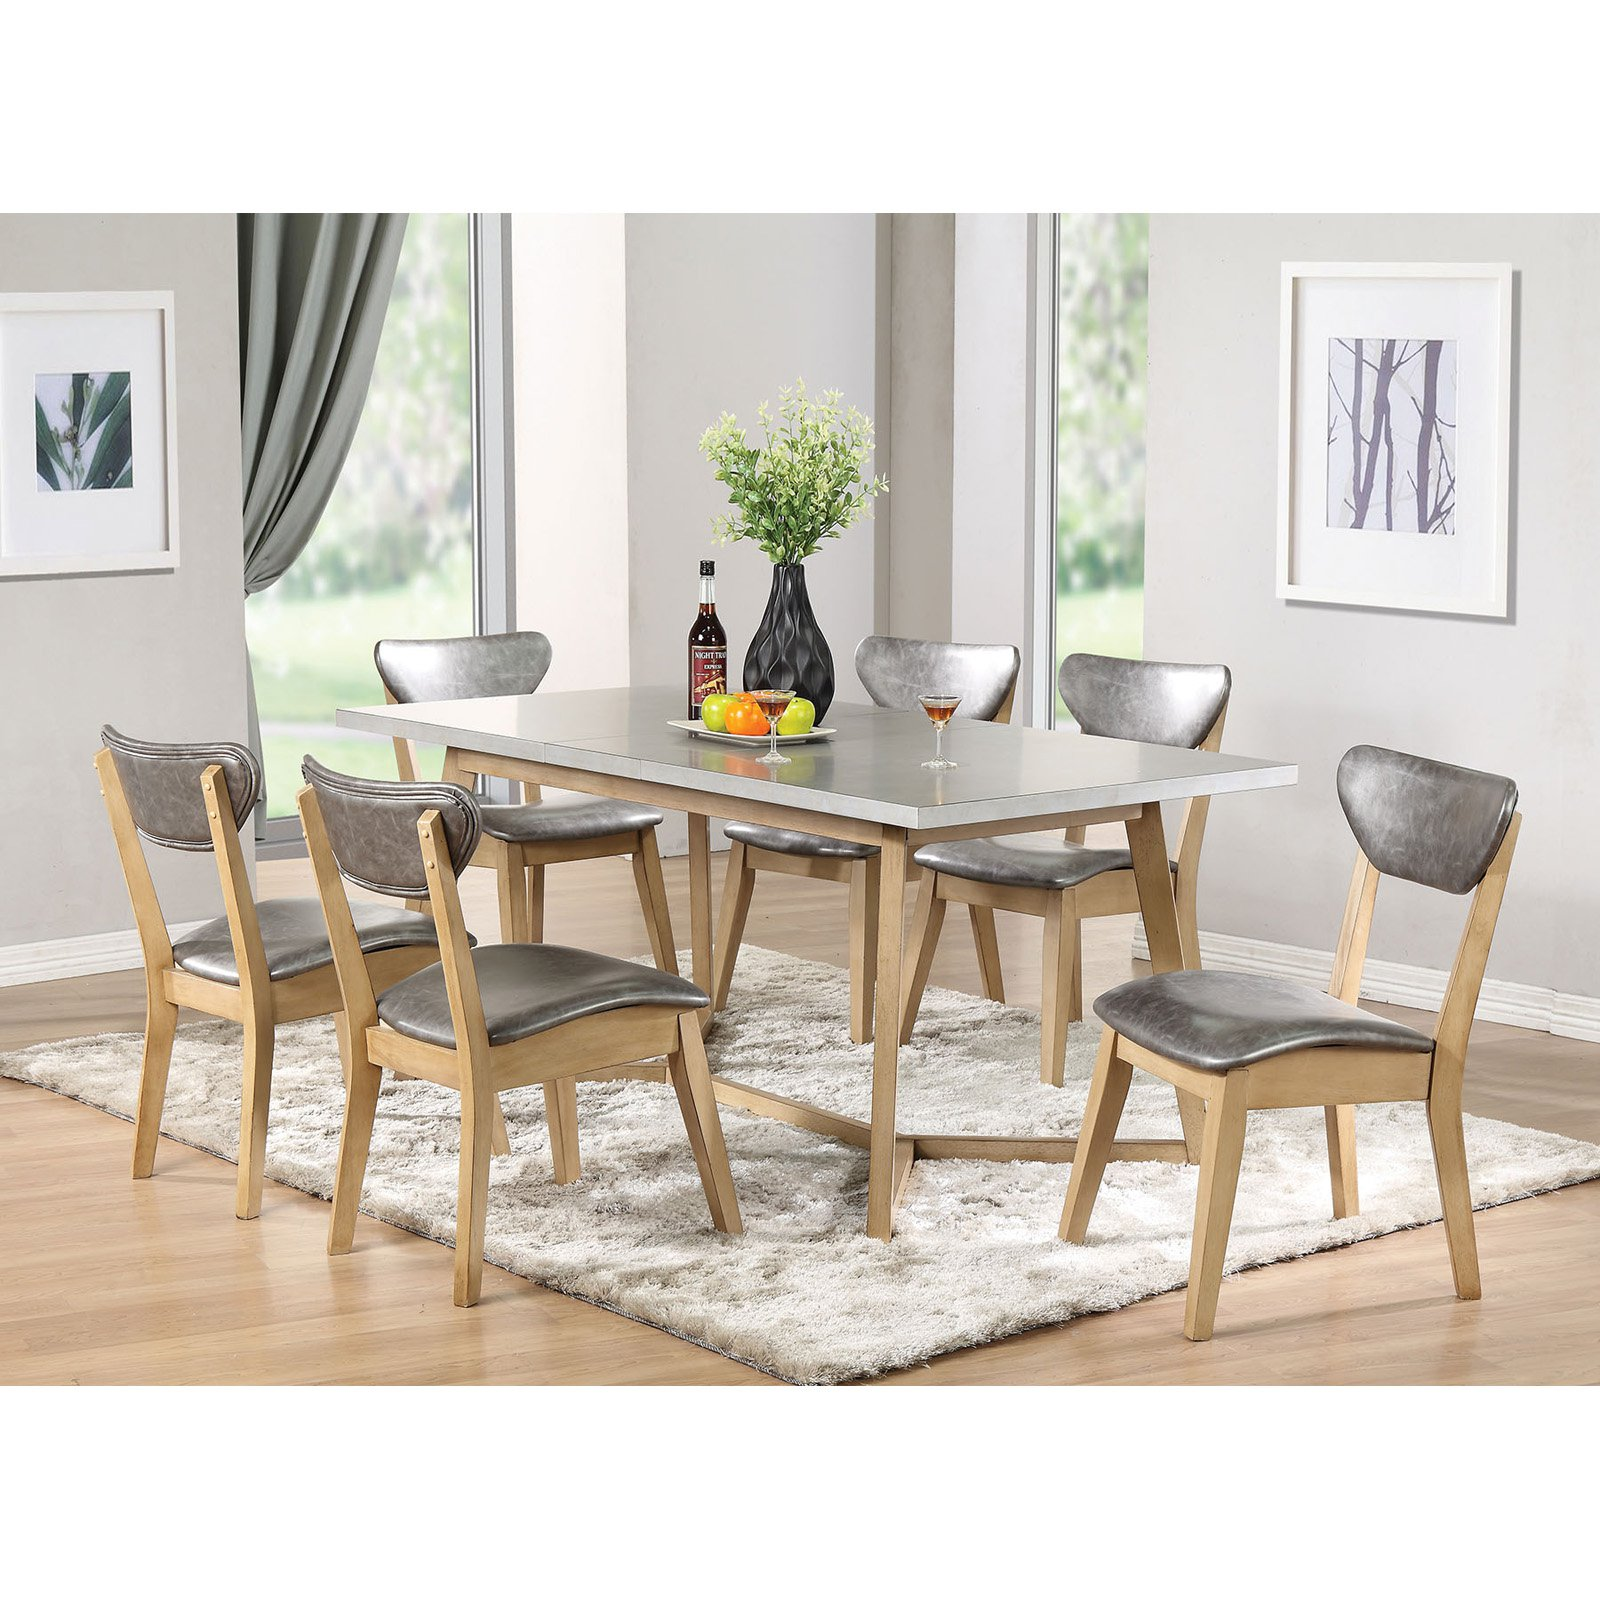 ACME Rosetta Dining Table, Light Gray & Antique Beige